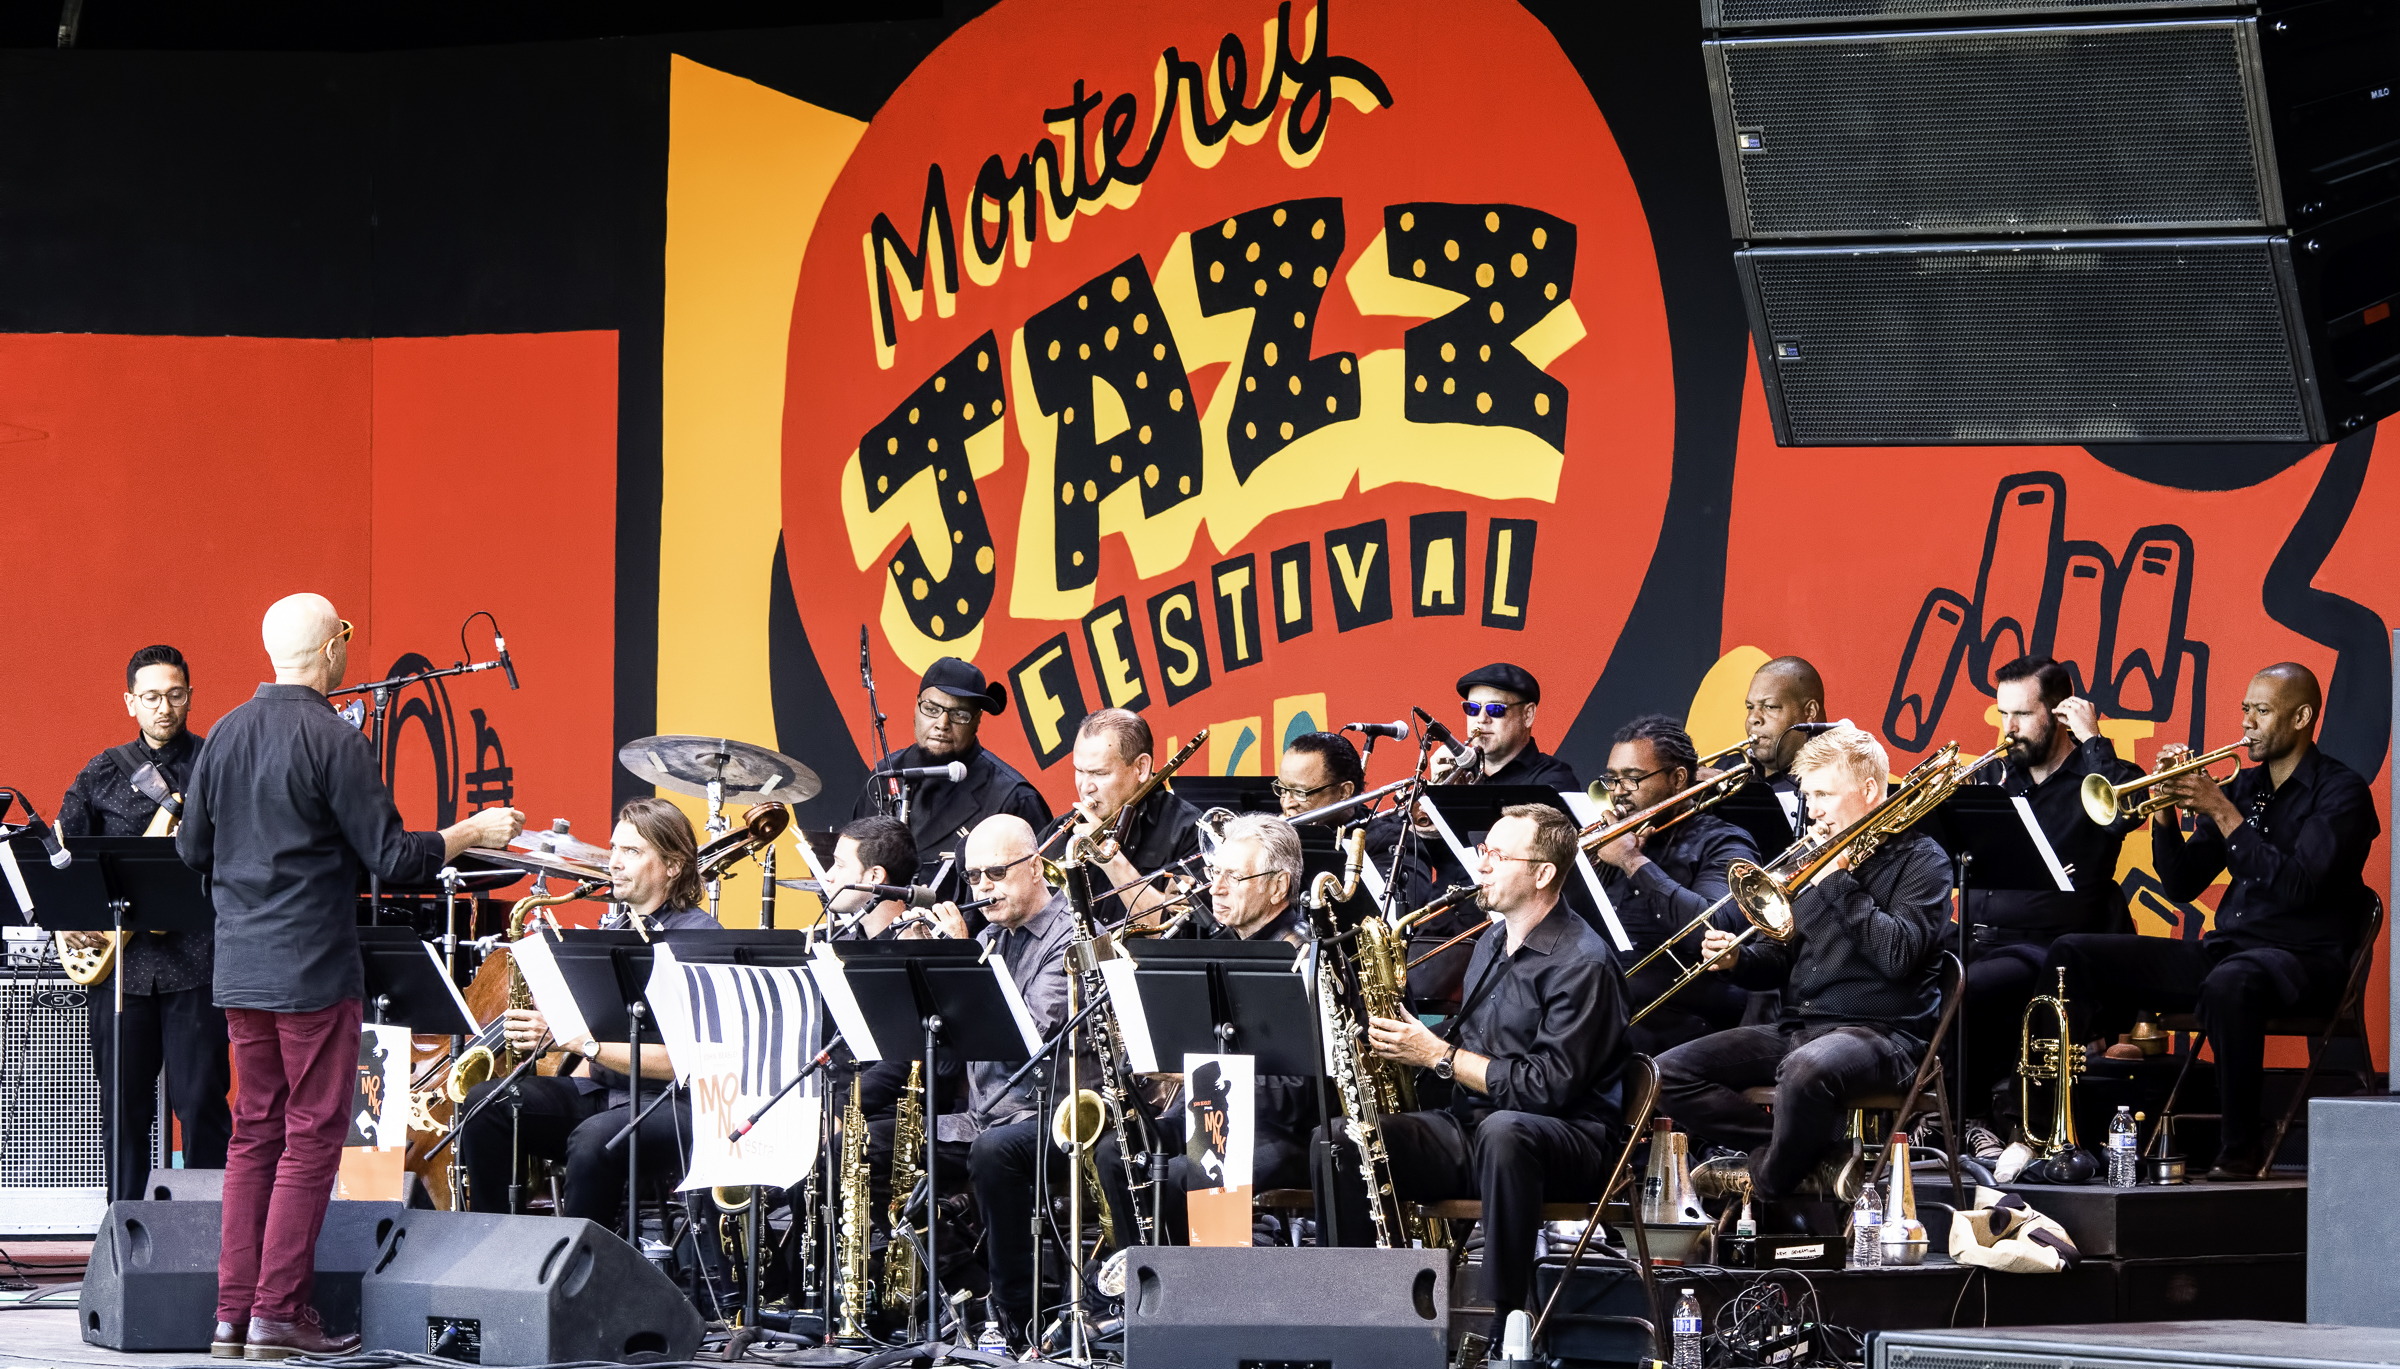 John Beasley and the MONK'estra at the Monterey jazz Festival